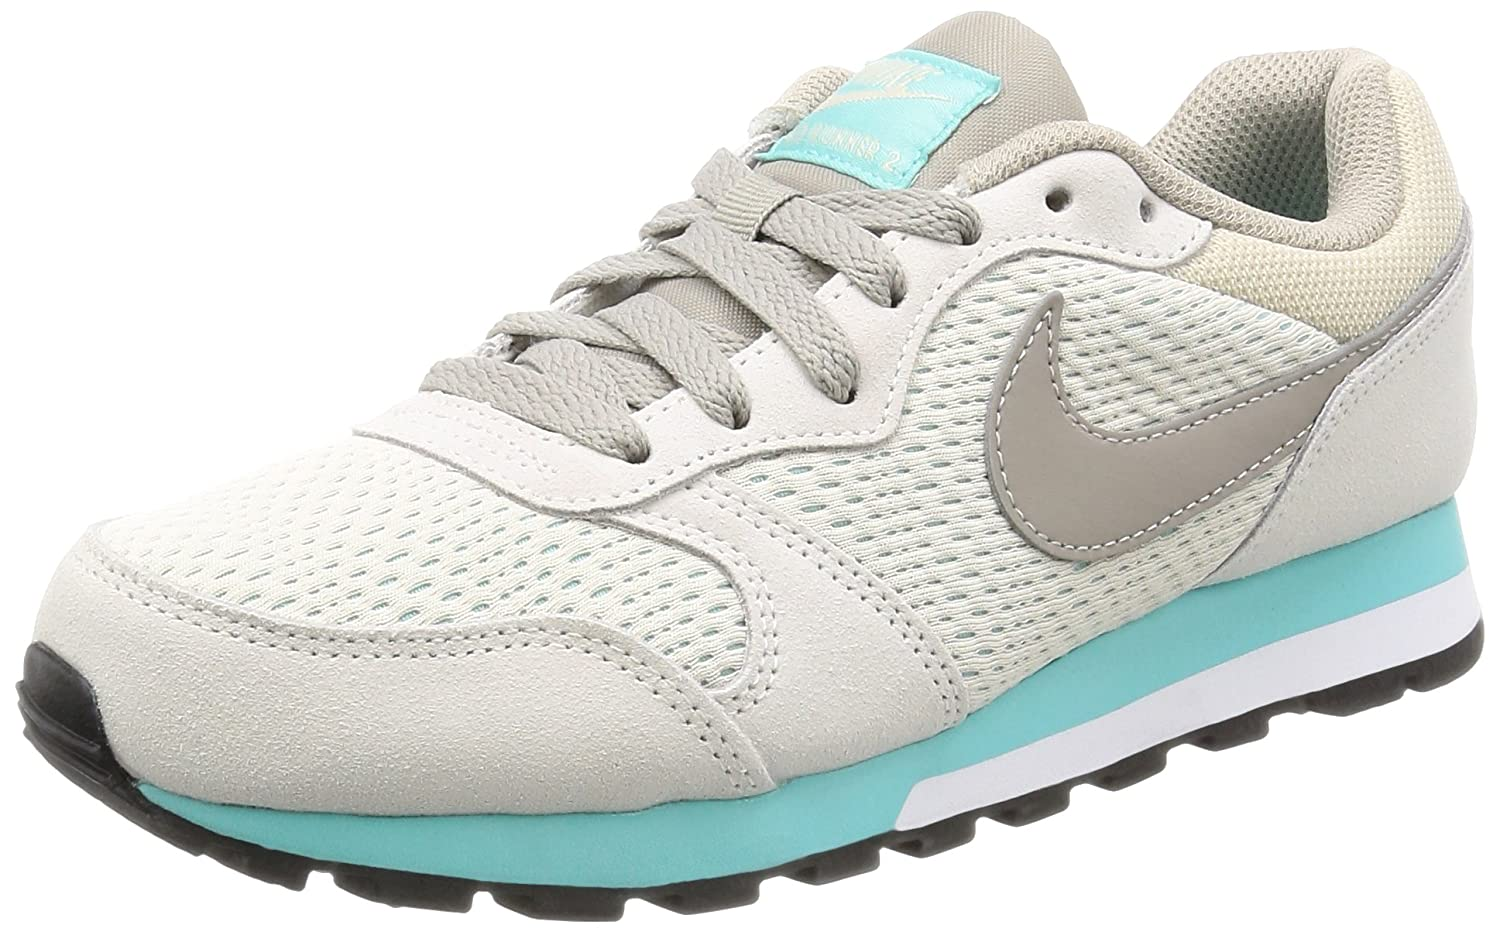 Nike 749869 101, Zapatillas para Mujer 37.5 EU|Marrón (Light Orewood Brown / Cobblestone / Aurora Green)